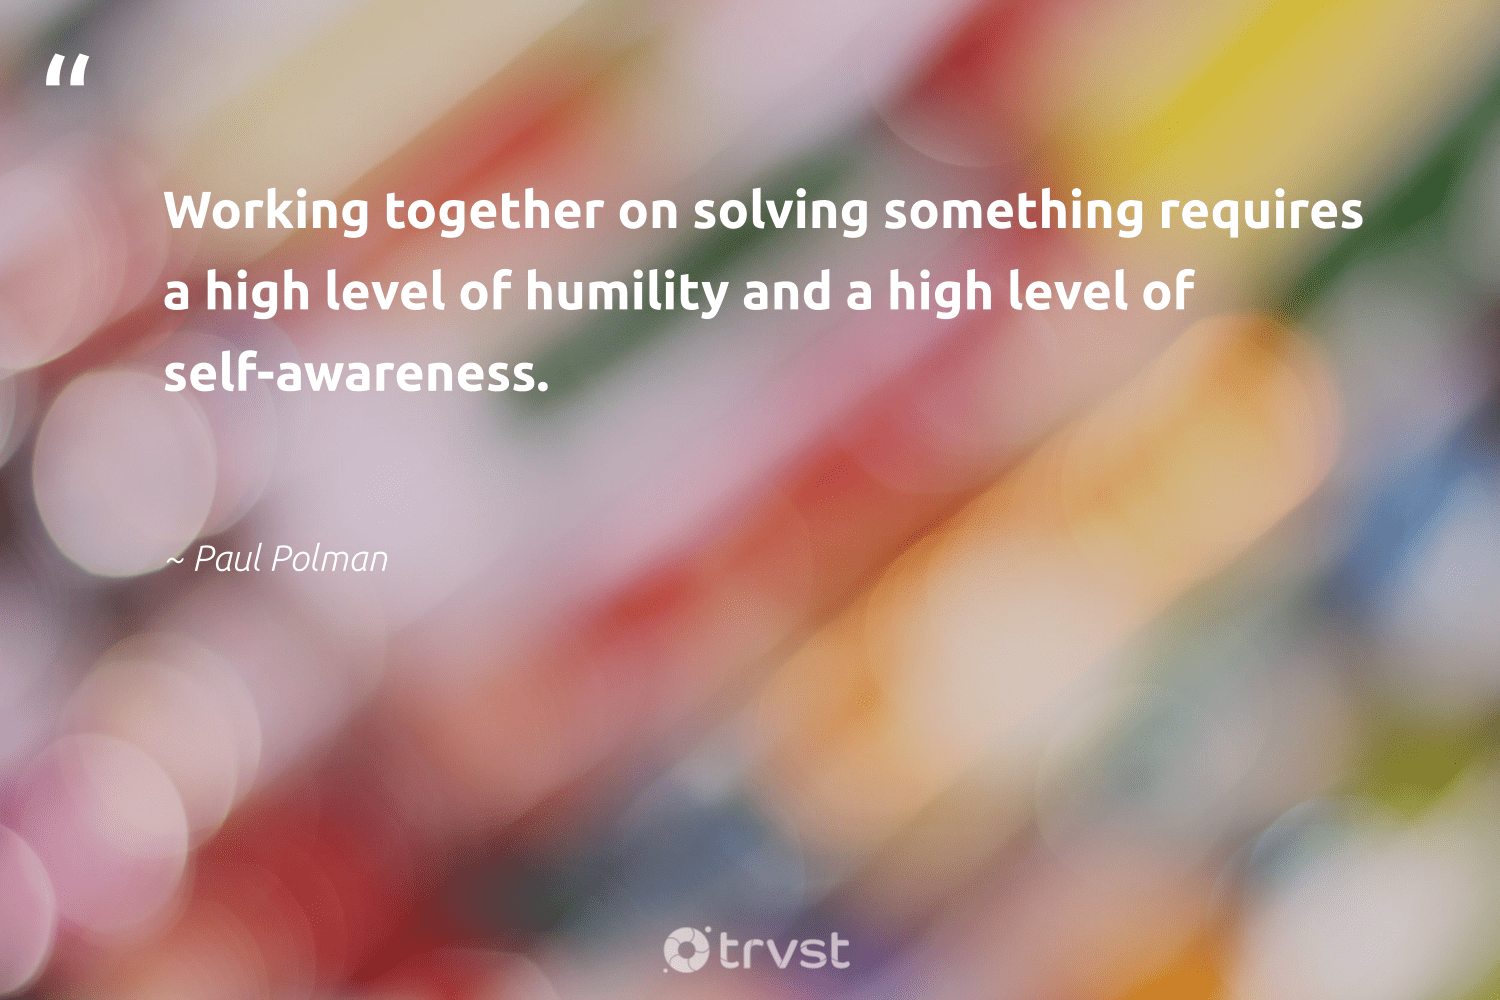 """Working together on solving something requires a high level of humility and a high level of self-awareness.""  - Paul Polman #trvst #quotes #workingtogether #nevergiveup #beinspired #begreat #bethechange #softskills #gogreen #futureofwork #socialimpact #planetearthfirst"